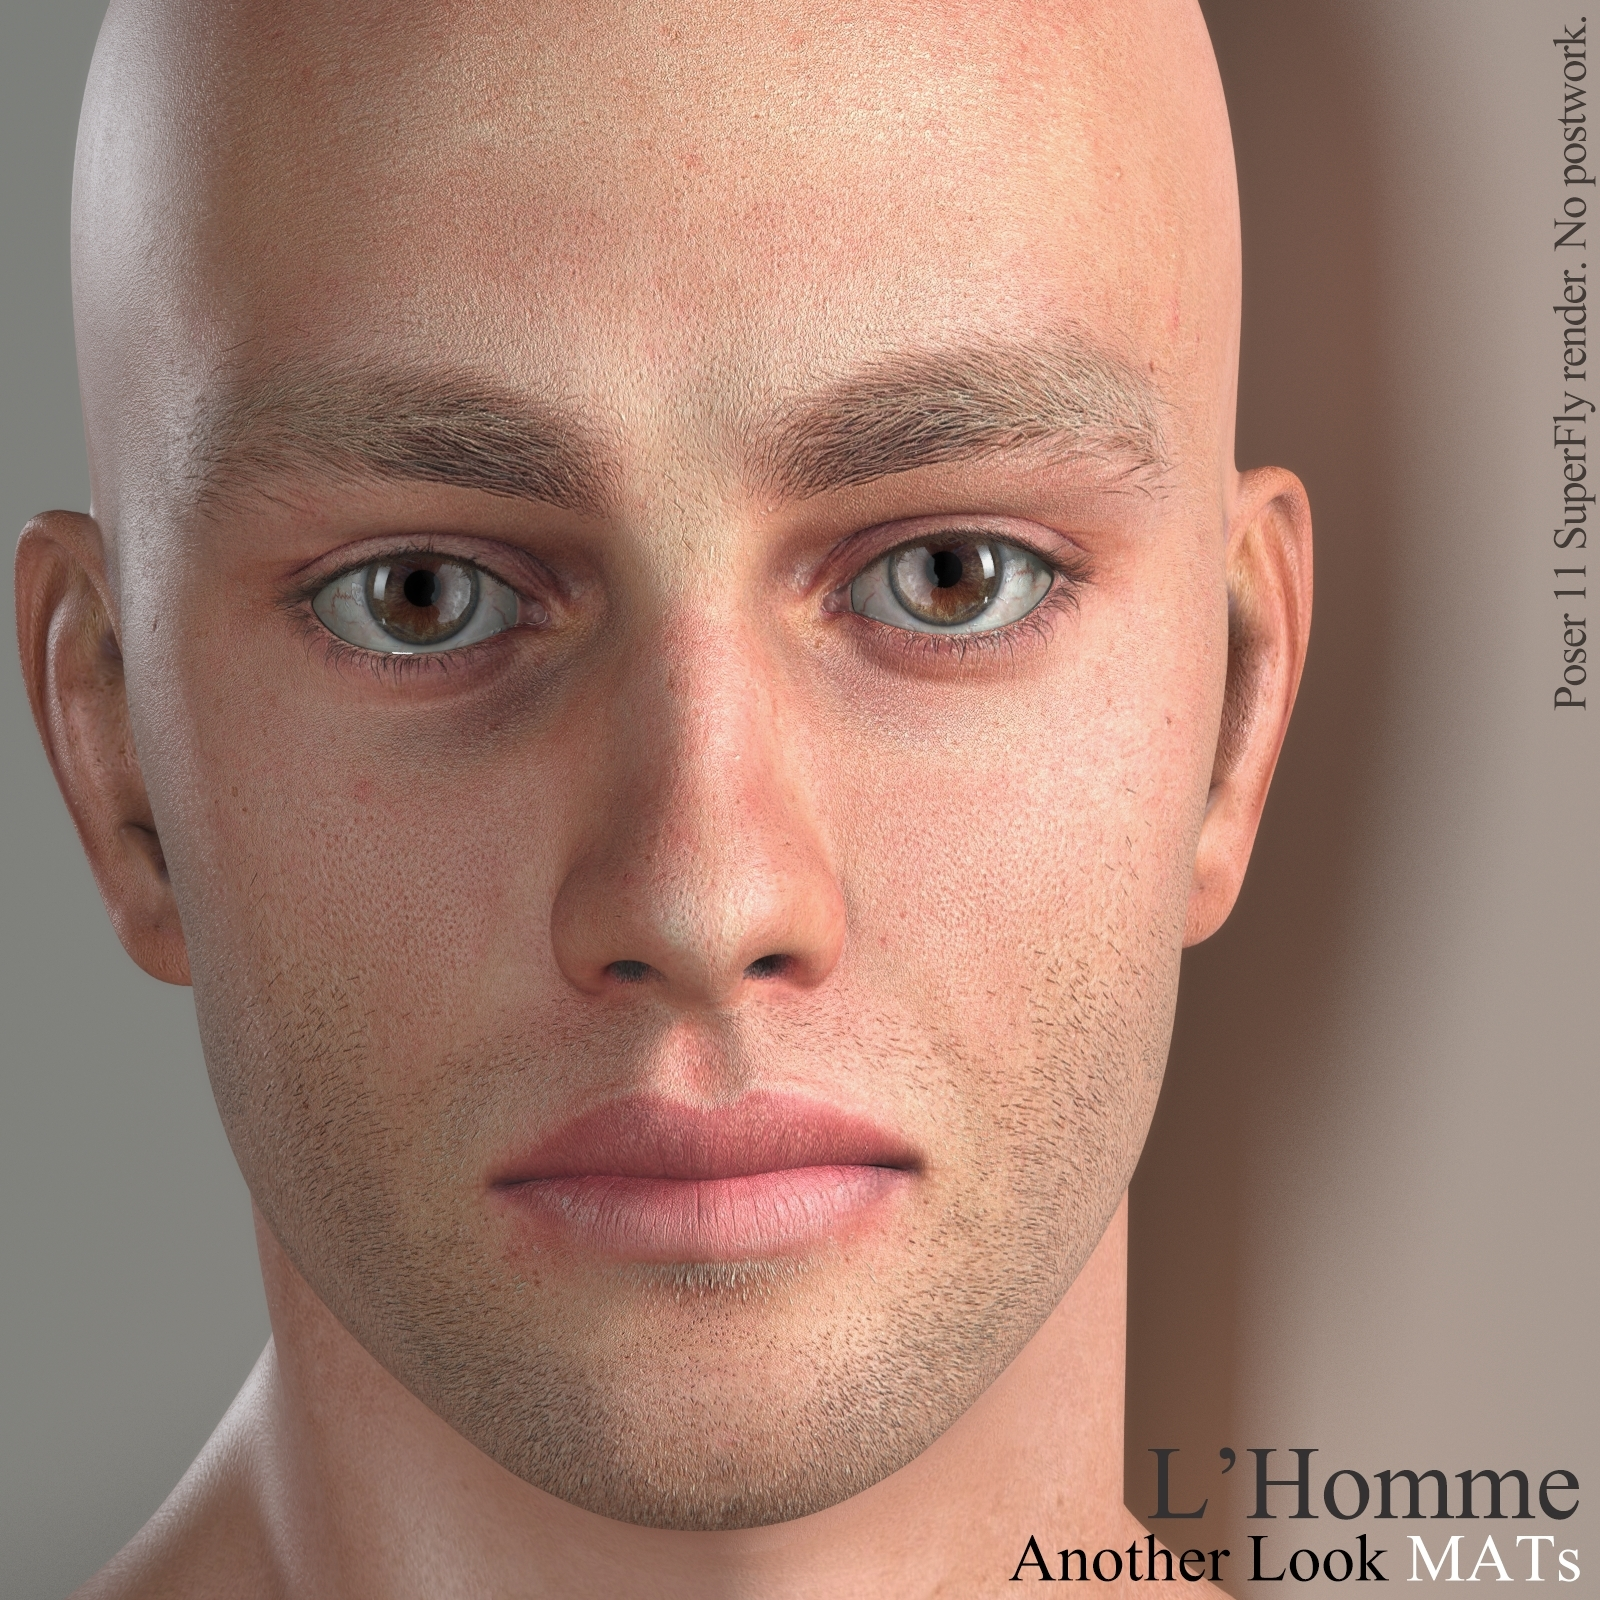 L'Homme - Another Look MATs by 3Dream